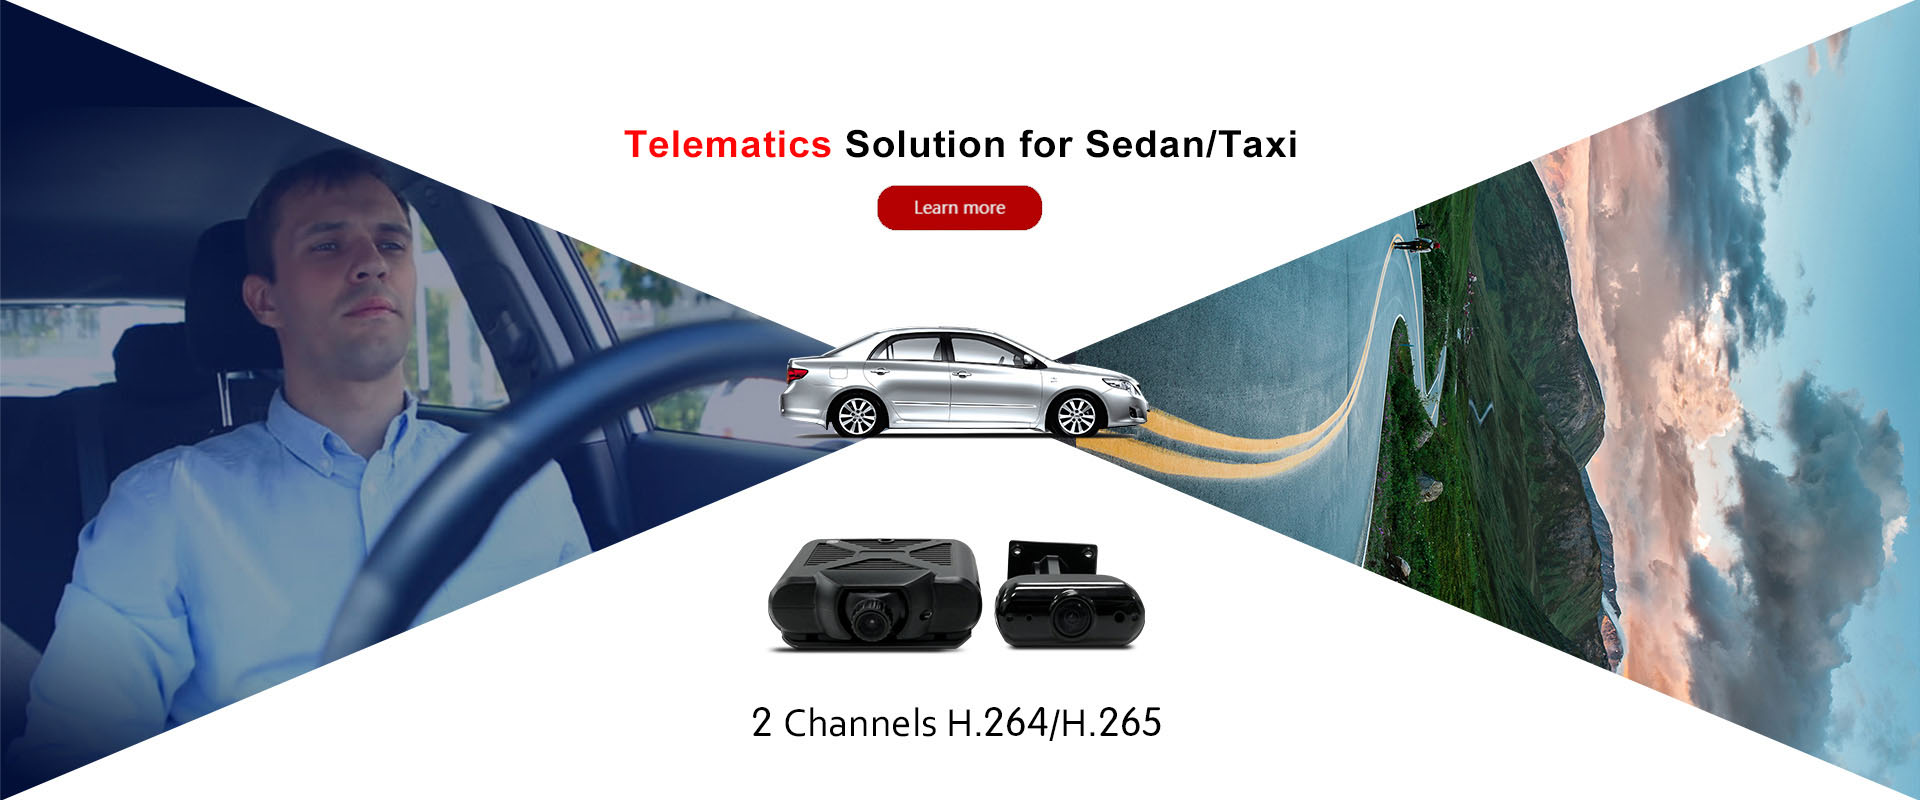 Telematics Solution for Sedan Taxi